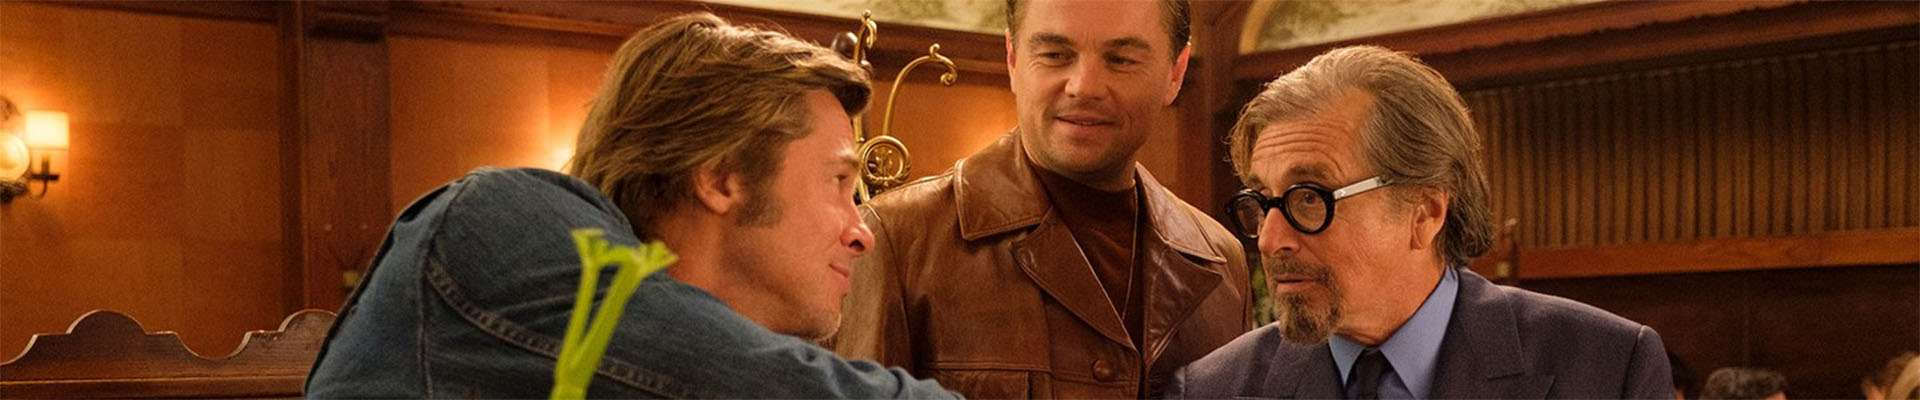 Once Upon a Time in Hollywood, Leonardo DiCaprio, Brad Pitt